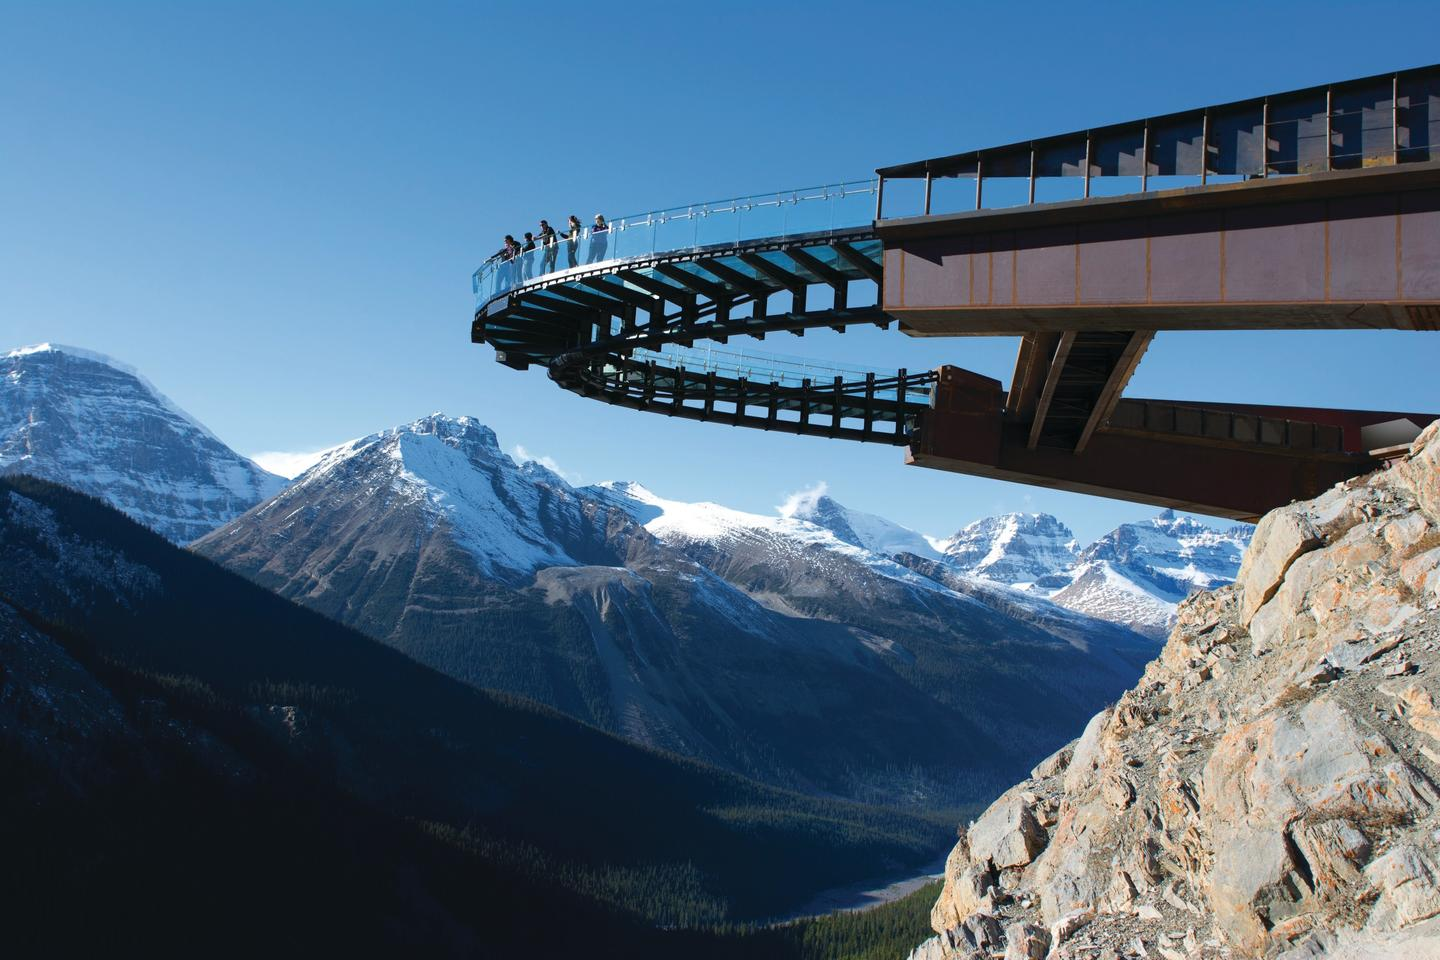 The award winning design features an impressive curved glass-floored walkway which is suspended 280 meters (918 feet) above the Sunwapta Valley (Photo: Brewster Travel Canada)